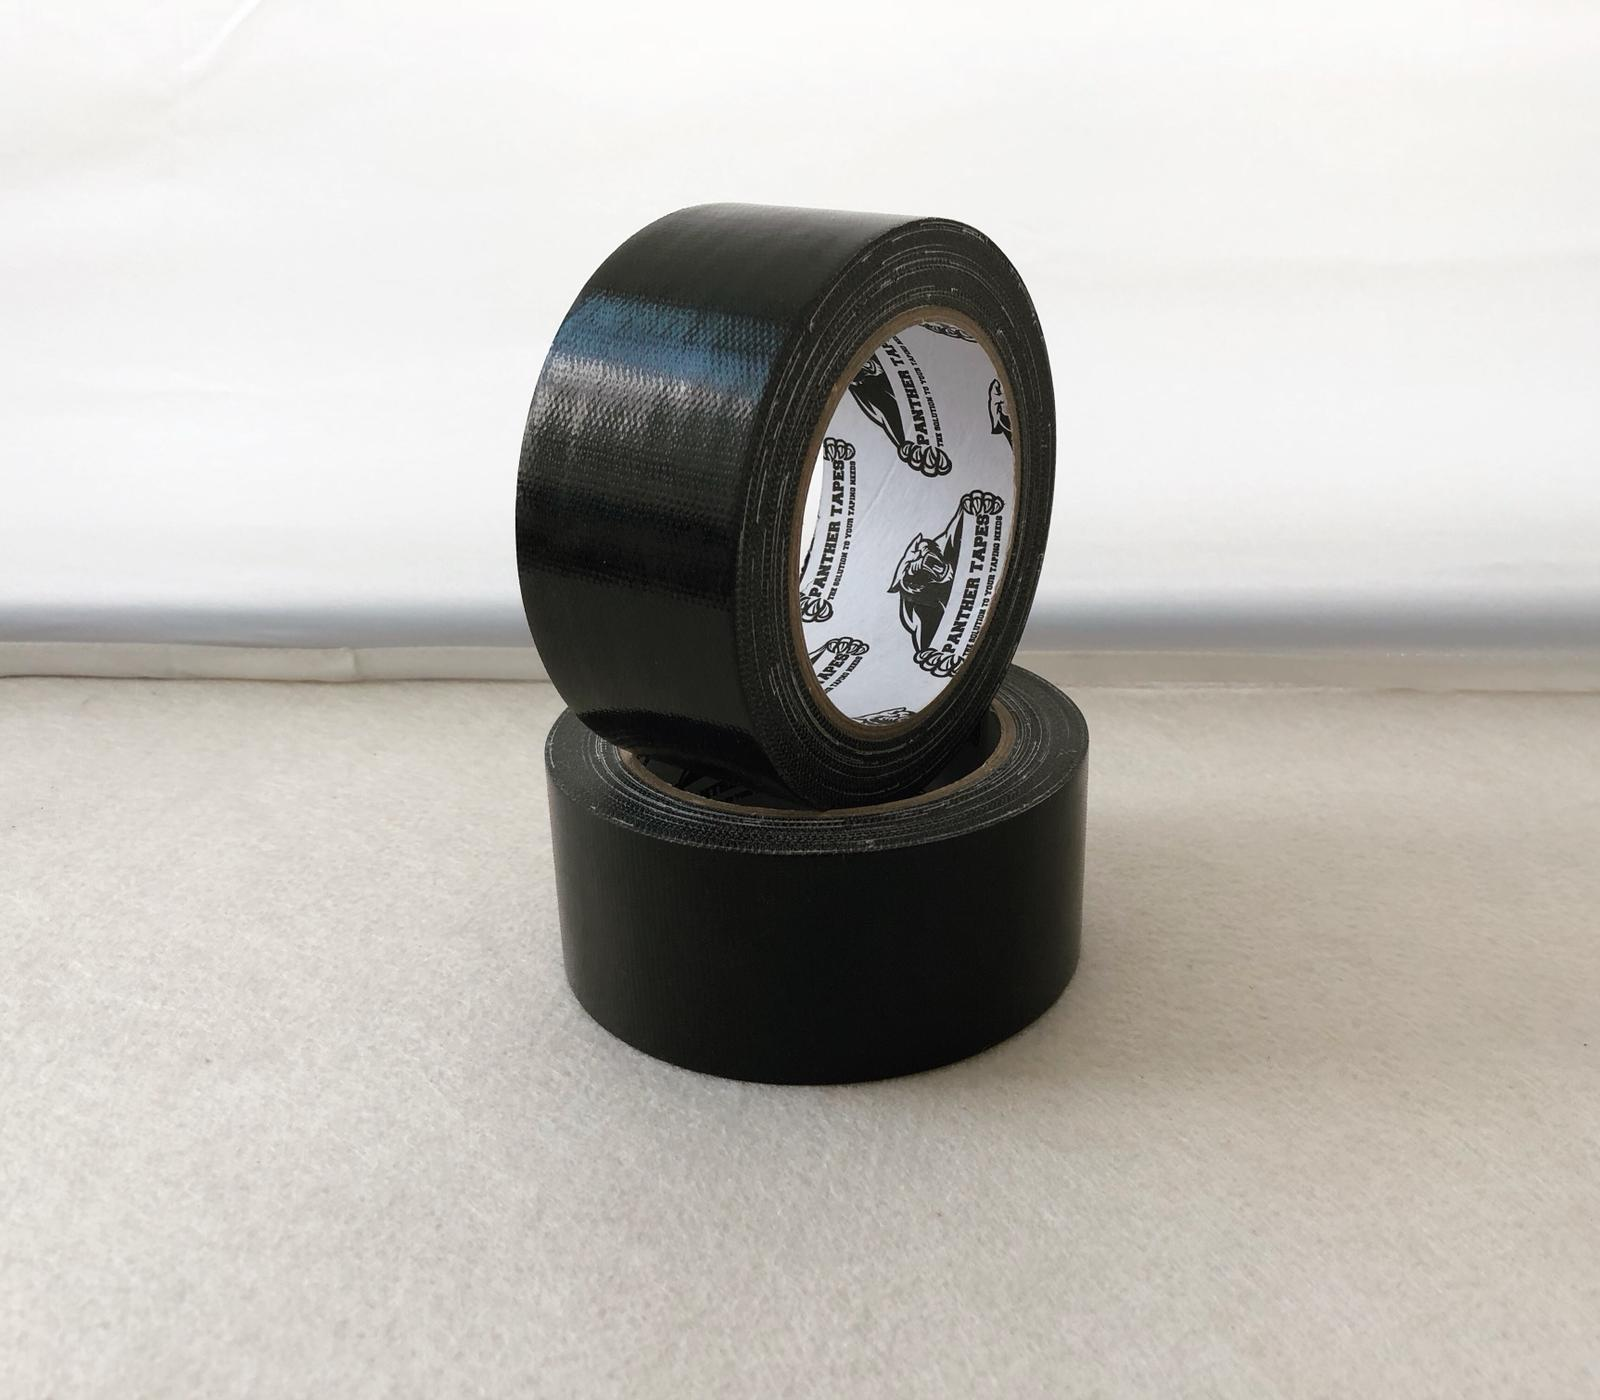 PANTHER CLOTH DUCT TAPE [48mm x 20m] - 24 rolls/carton